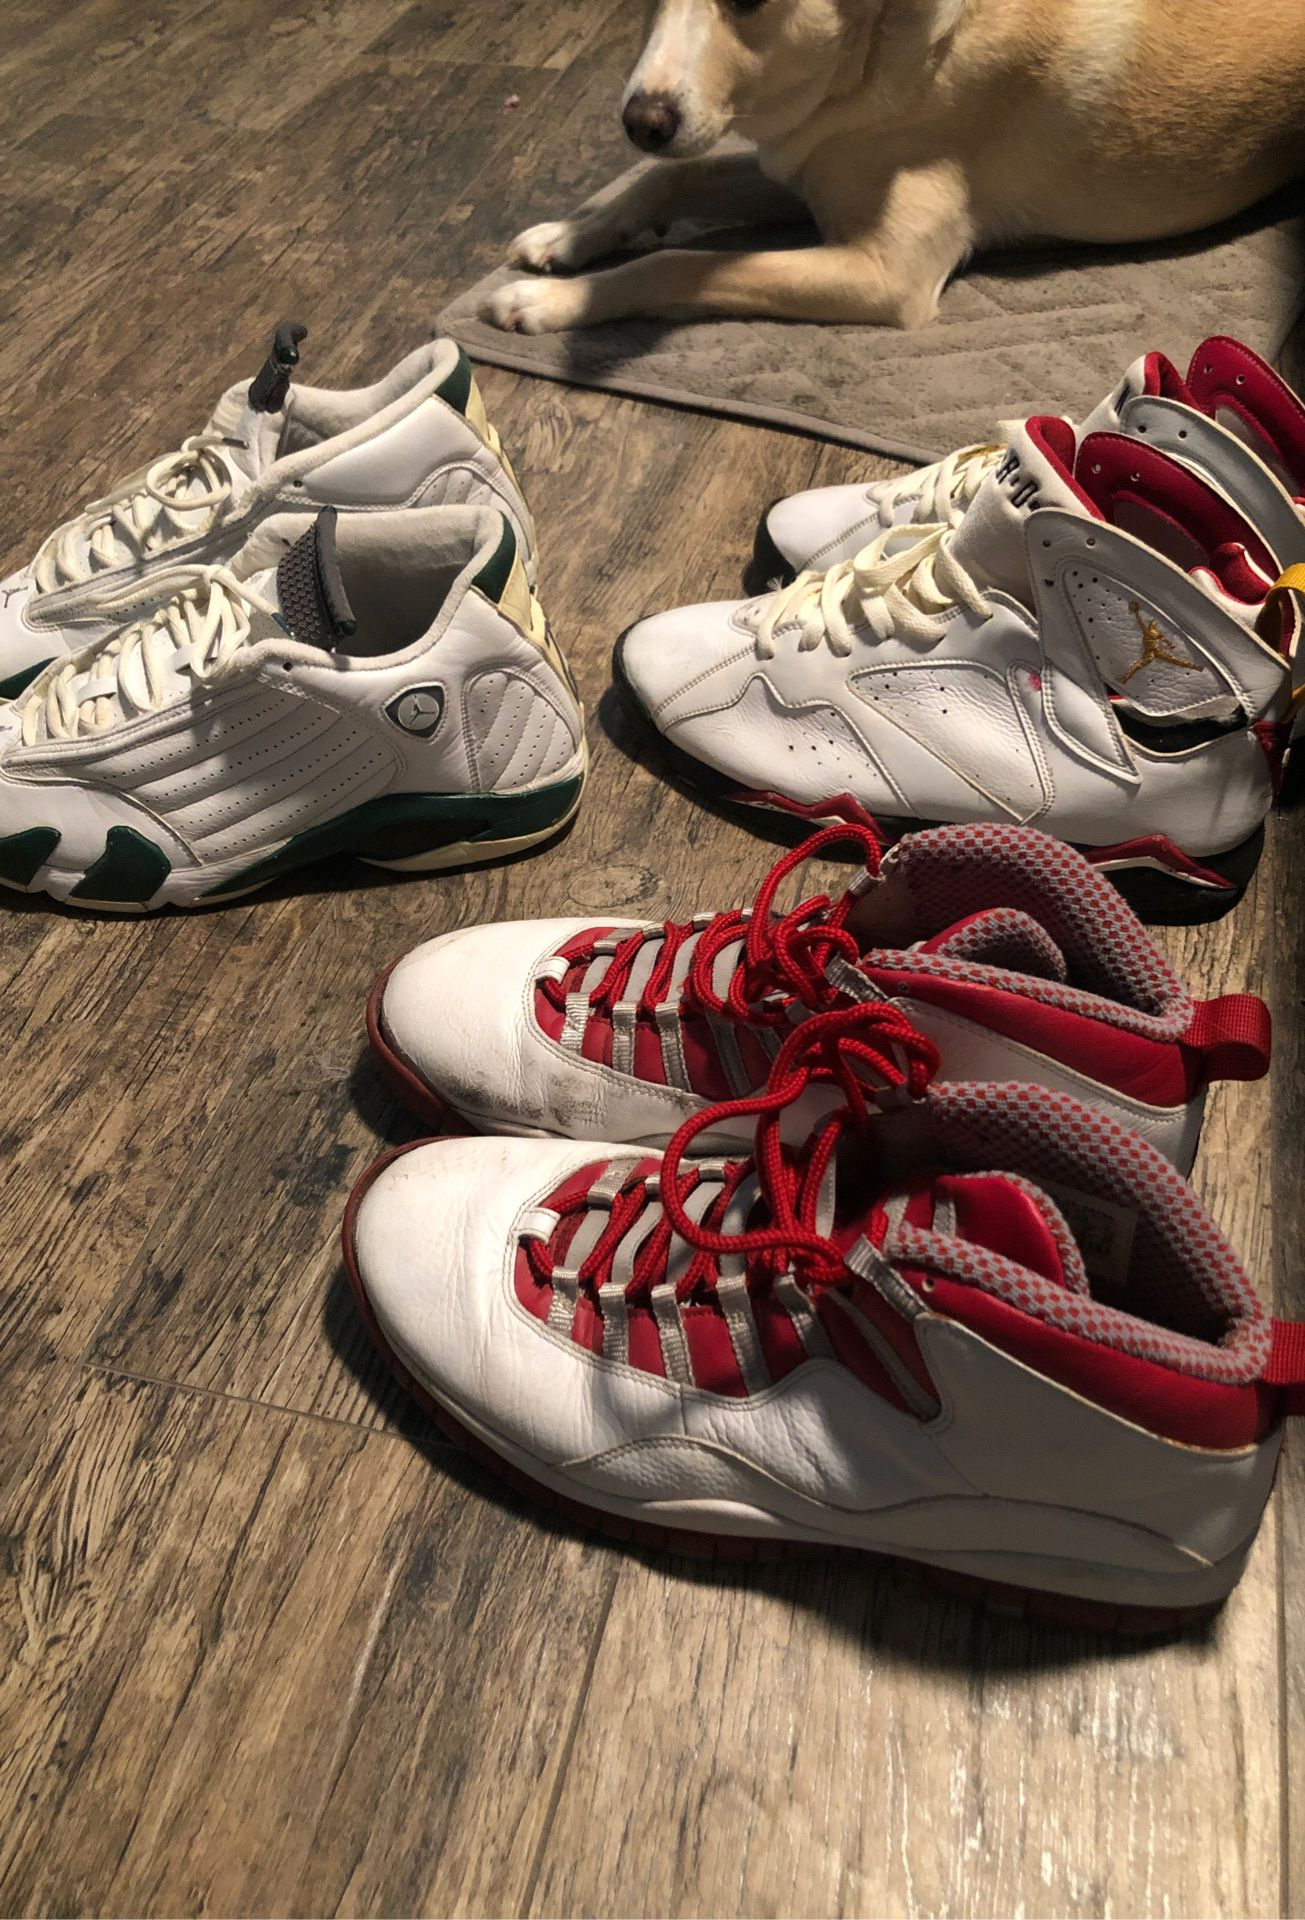 All of Jordan 90'a realeases